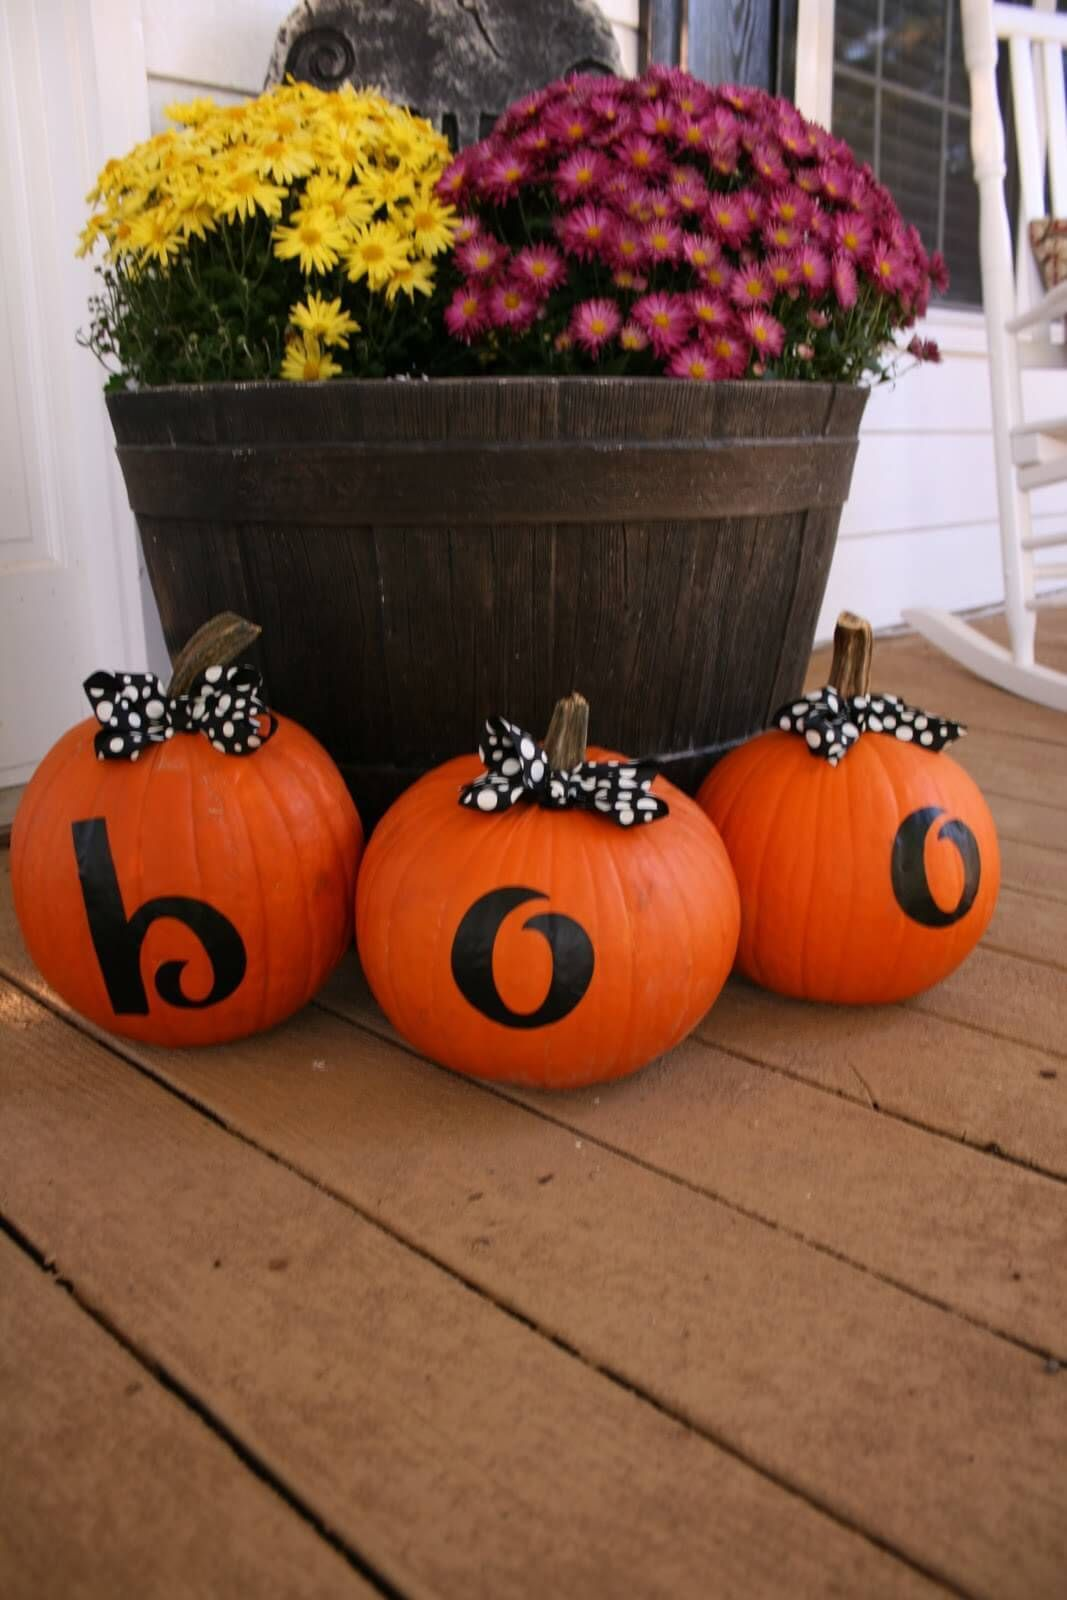 25 Inexpensive Fall Porch Decorating Ideas Designs For Your Lovely Home Fall Decorations Porch Fall Yard Decor Fall Outdoor Decor